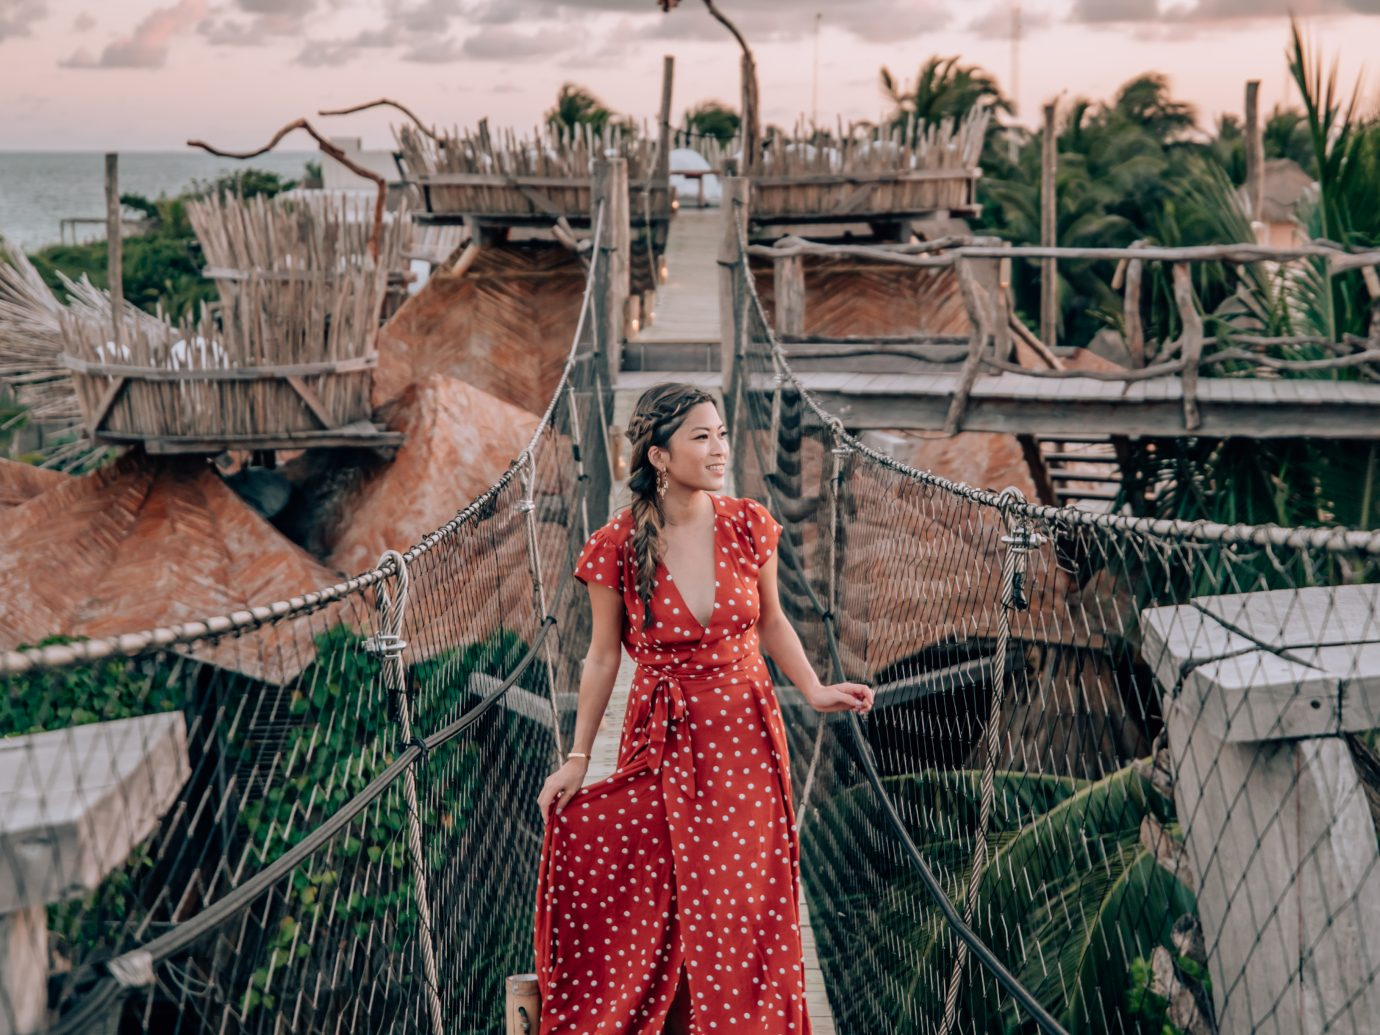 girl in a polka dot dress on a rope bridge